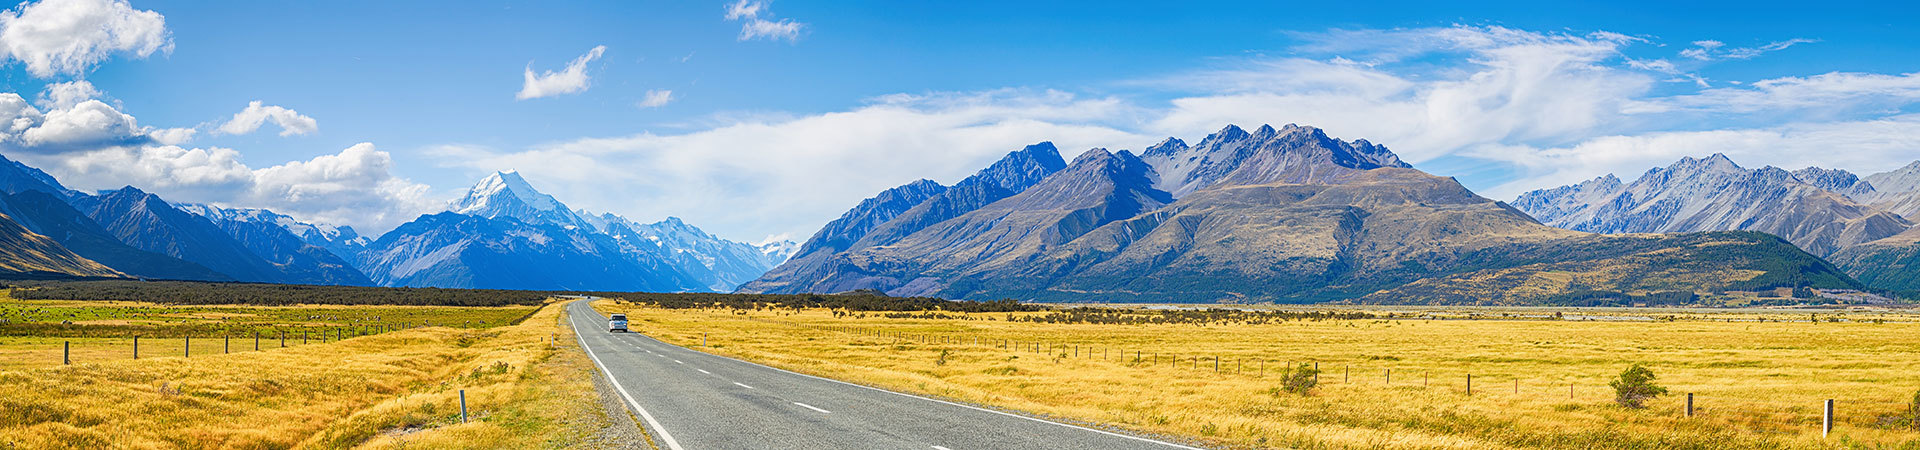 car driving on South Island New Zealand road surrounded by mountains